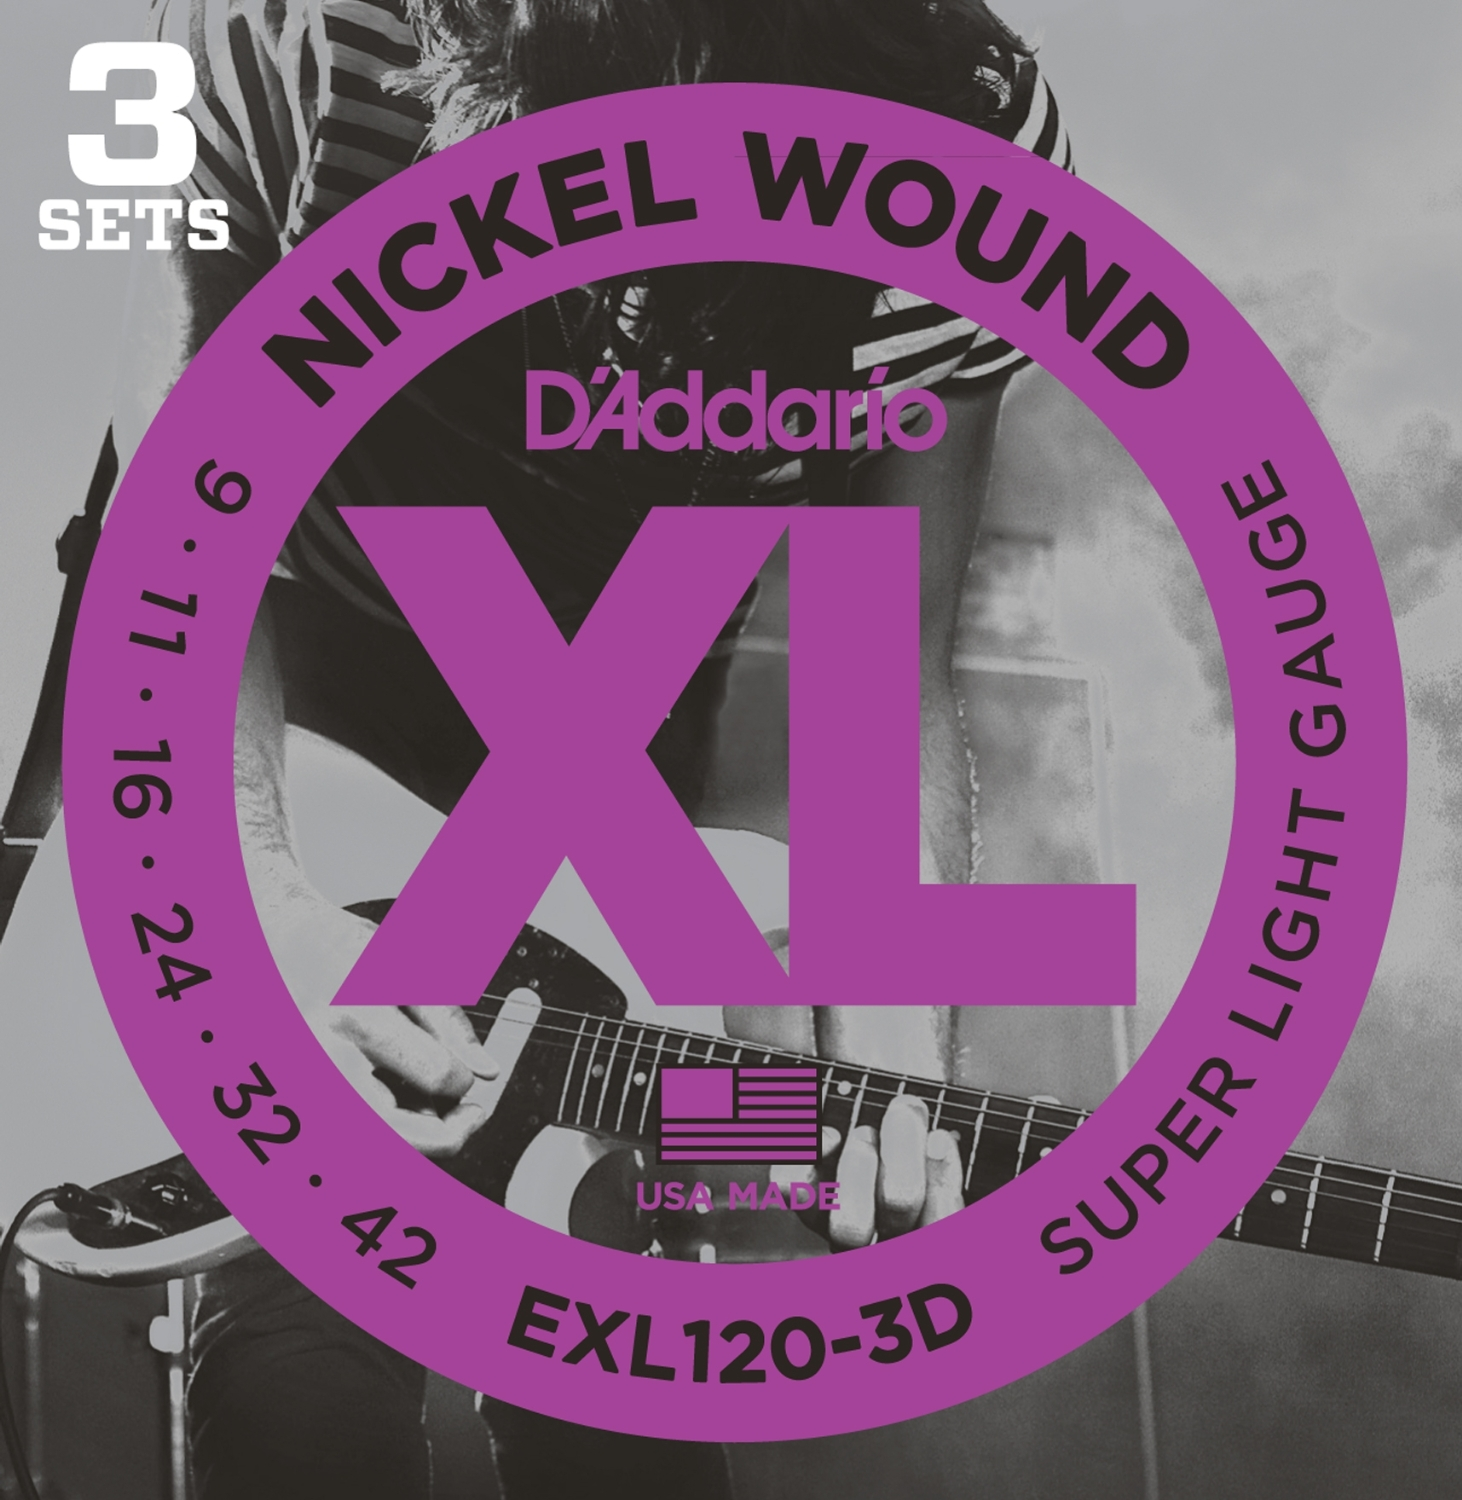 EXL120-3D [Nickel Wound 09-42] 3セット